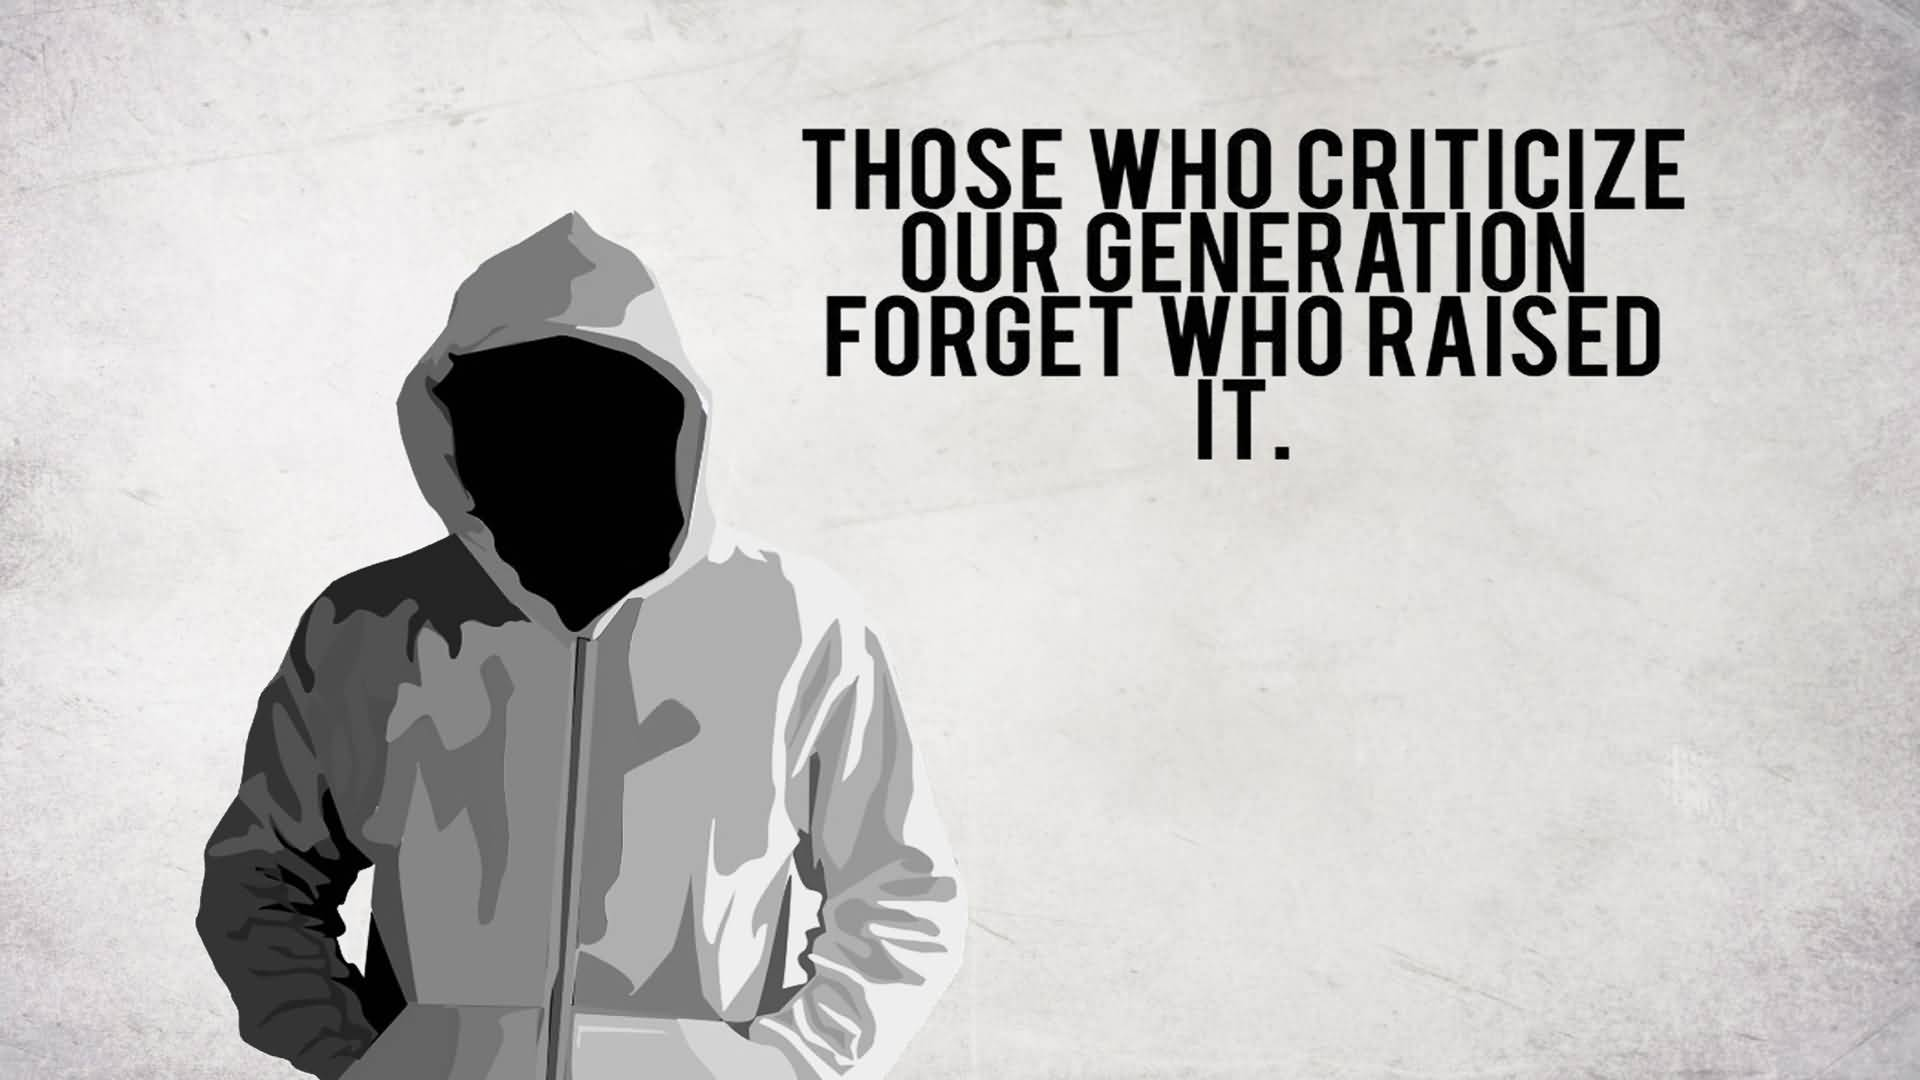 Criticize sayings those who criticize our generation forget who raised